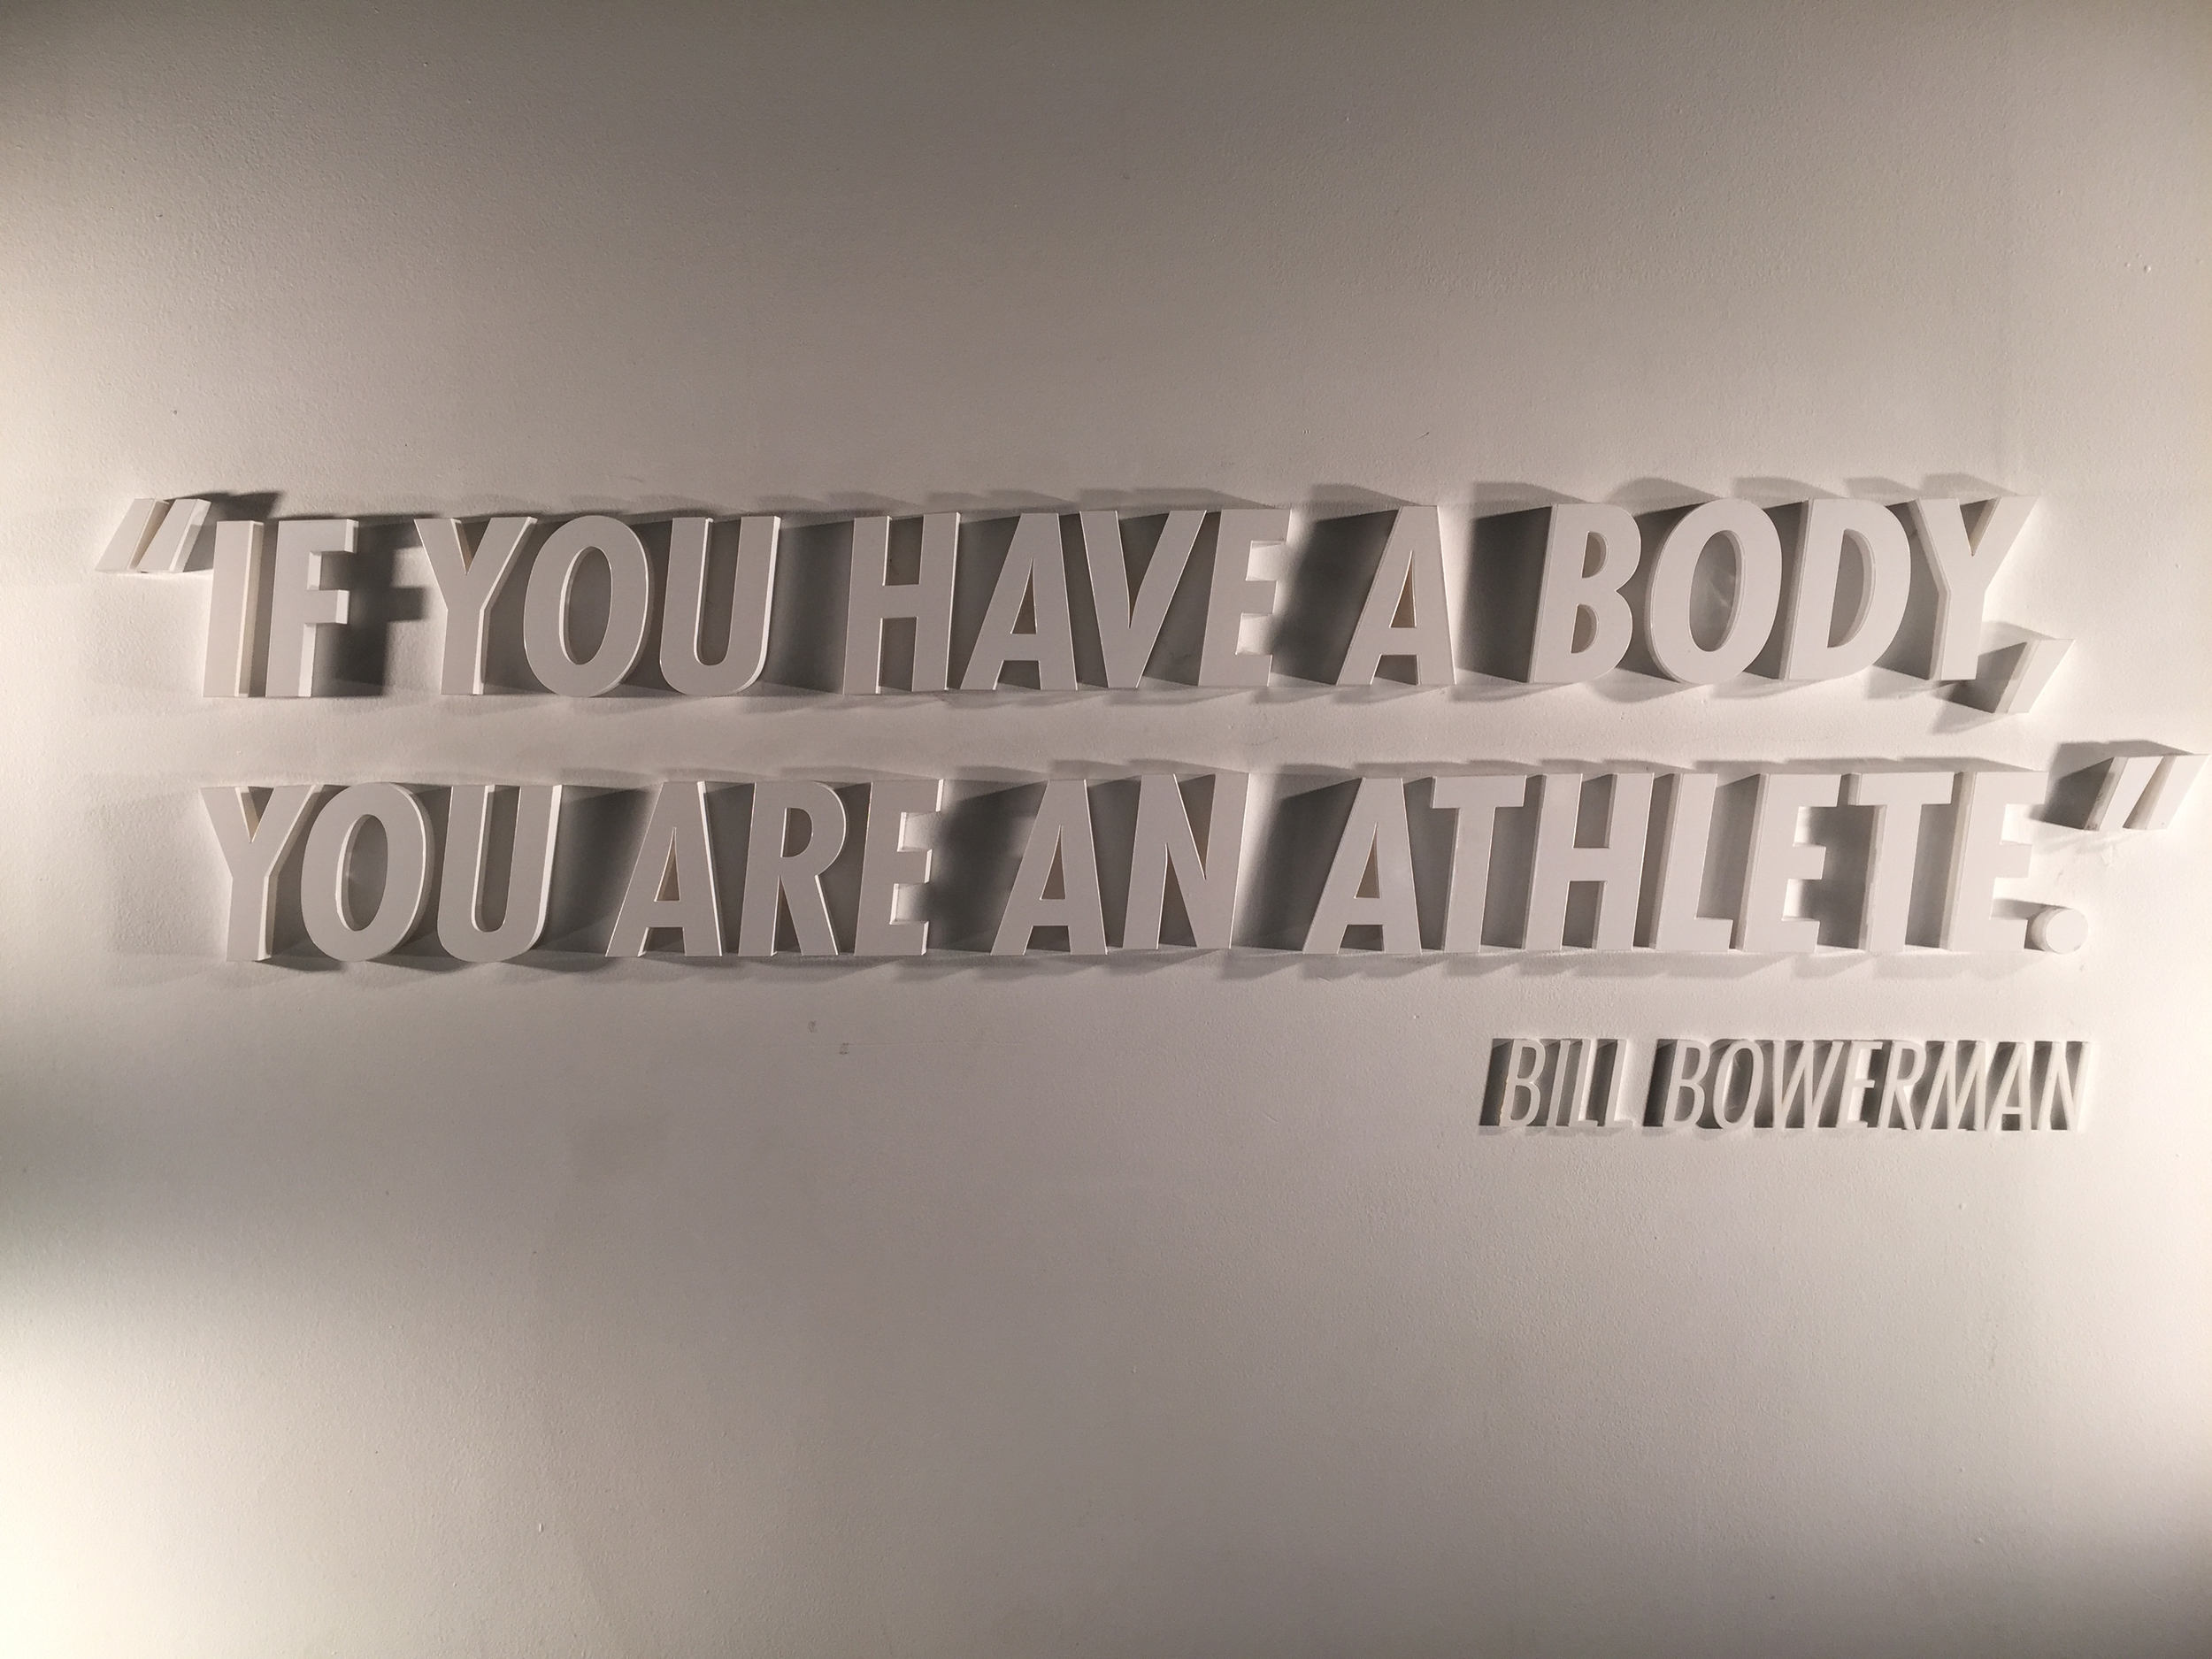 """William Jay """"Bill"""" Bowerman was an American track and field coach and co-founder of Nike, Inc. Over his career, he trained 31 Olympic athletes, 51 All-Americans, 12 American record-holders, 22 NCAA champions and 16 sub-4 minute milers."""